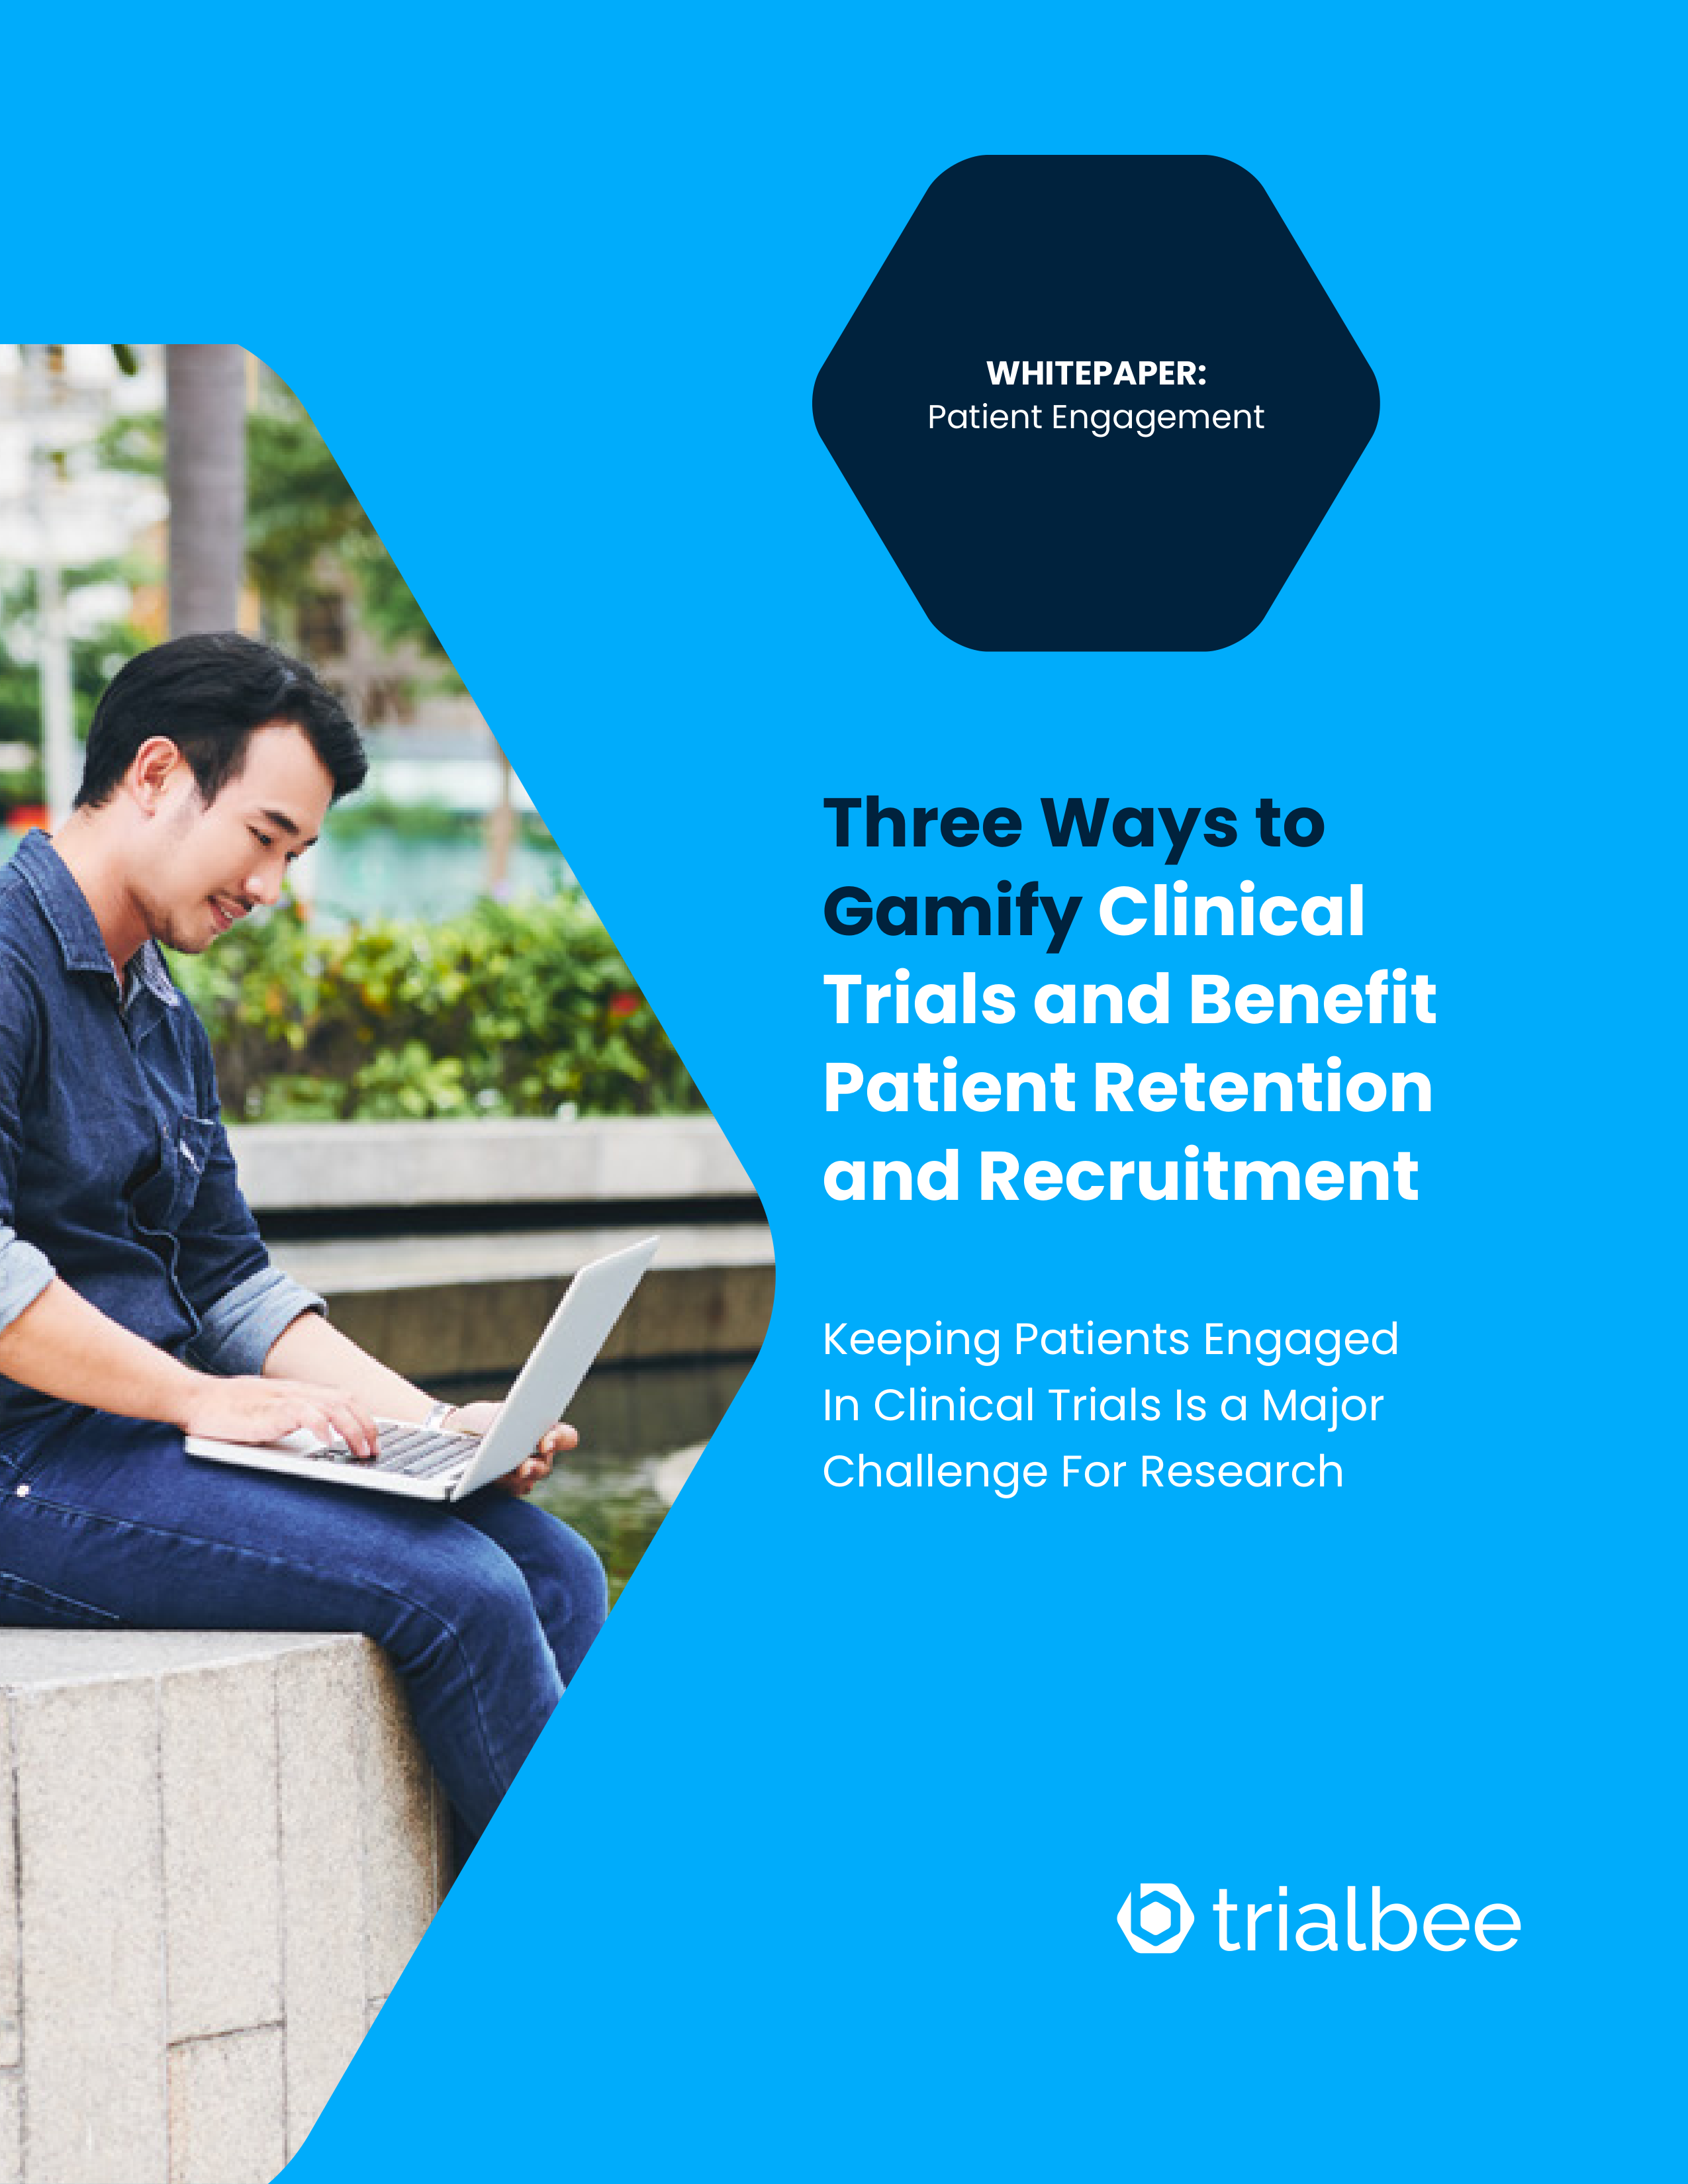 Three Ways to Gamify Clinical Trials and Benefit Patient Retention and Recruitment